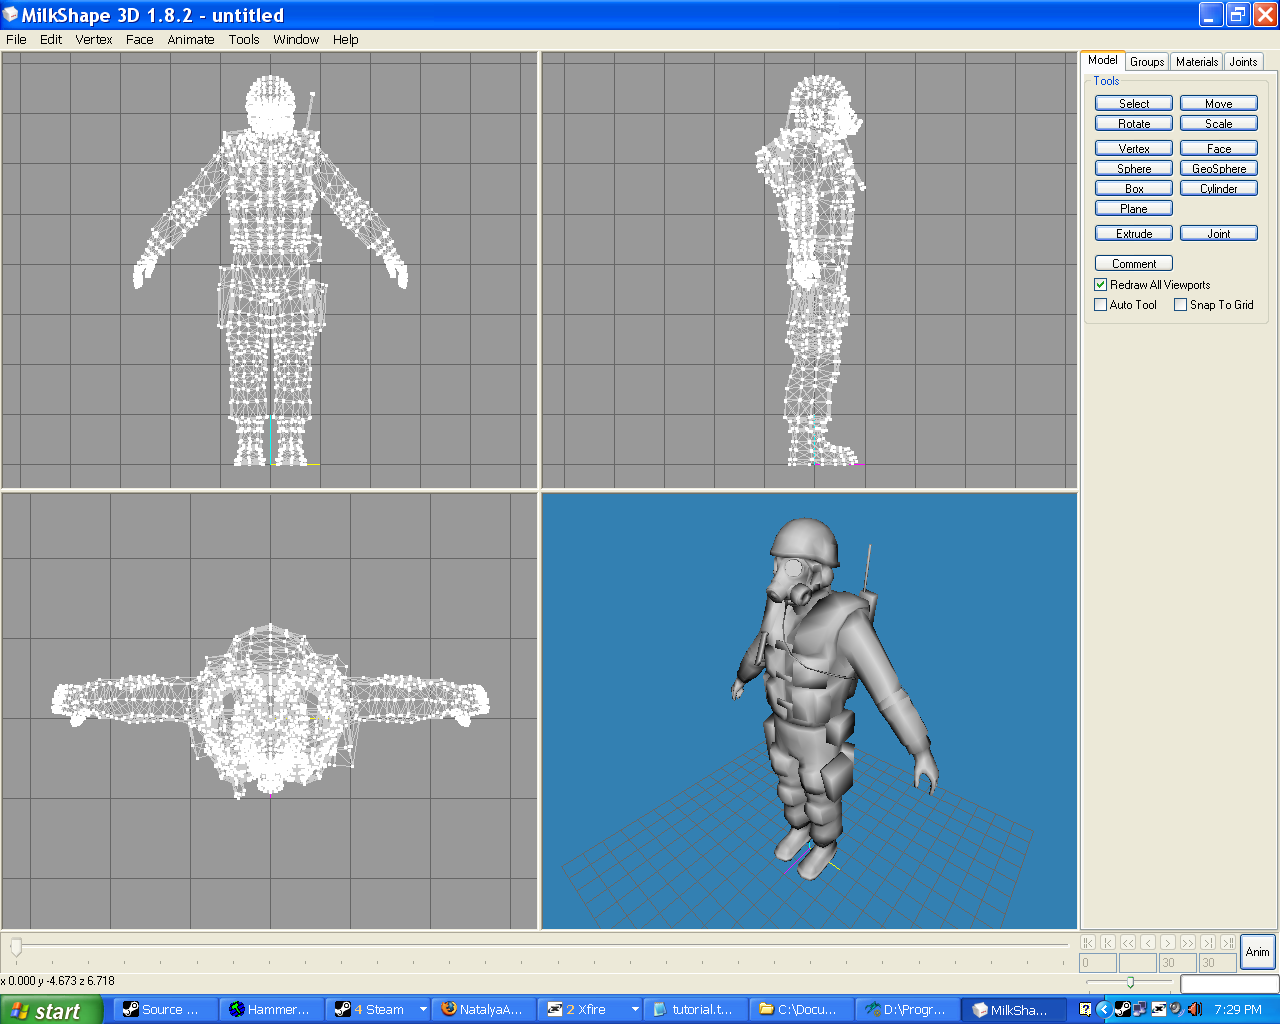 Player model editing for n00bs counter strike source 3d model editor